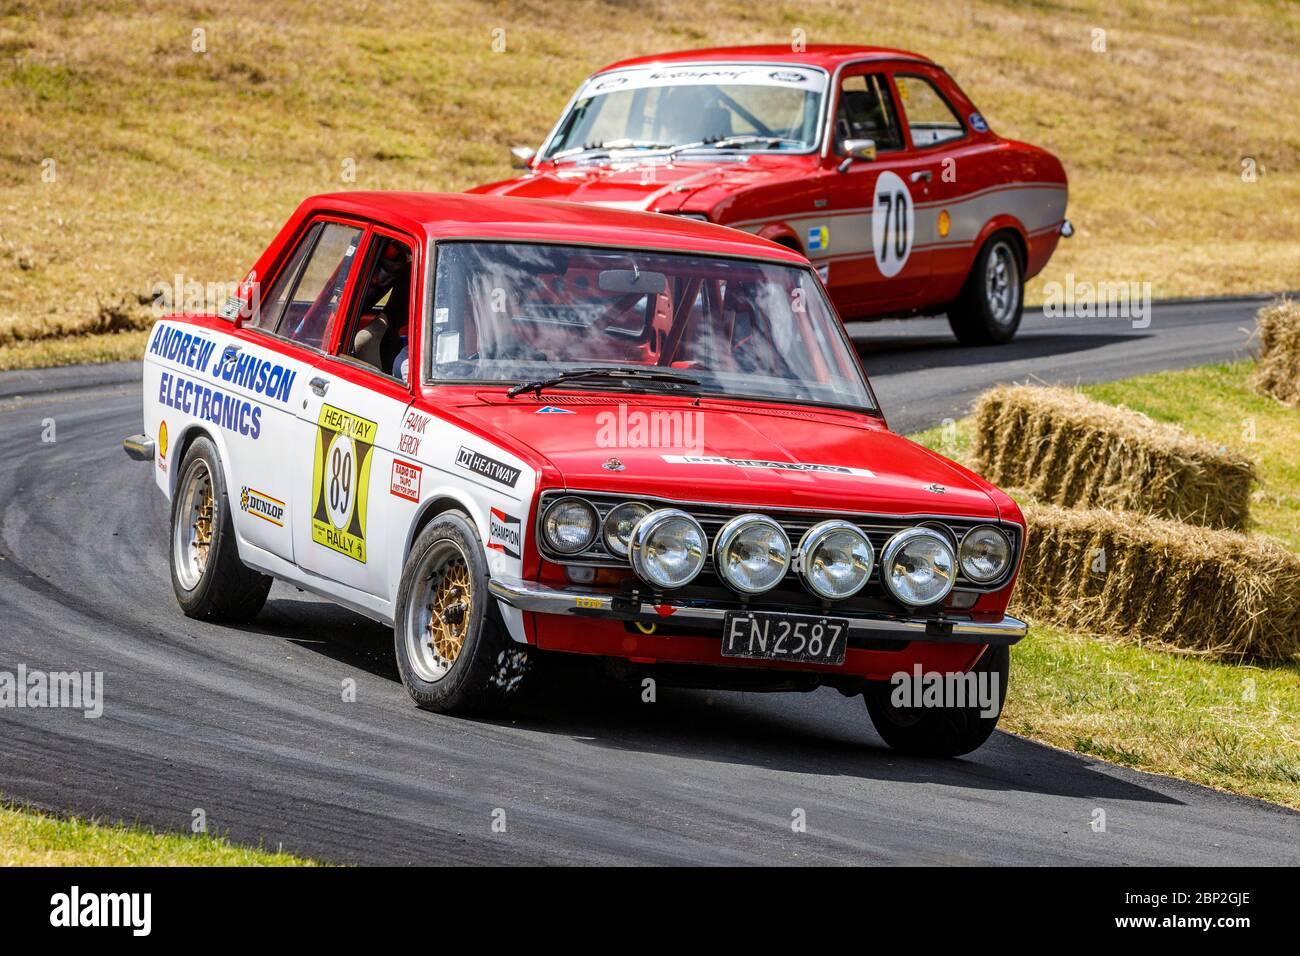 Andrew Johnson in his 1972 Heatway Rally Datsun 1600 restored to original livery. Stock Photo